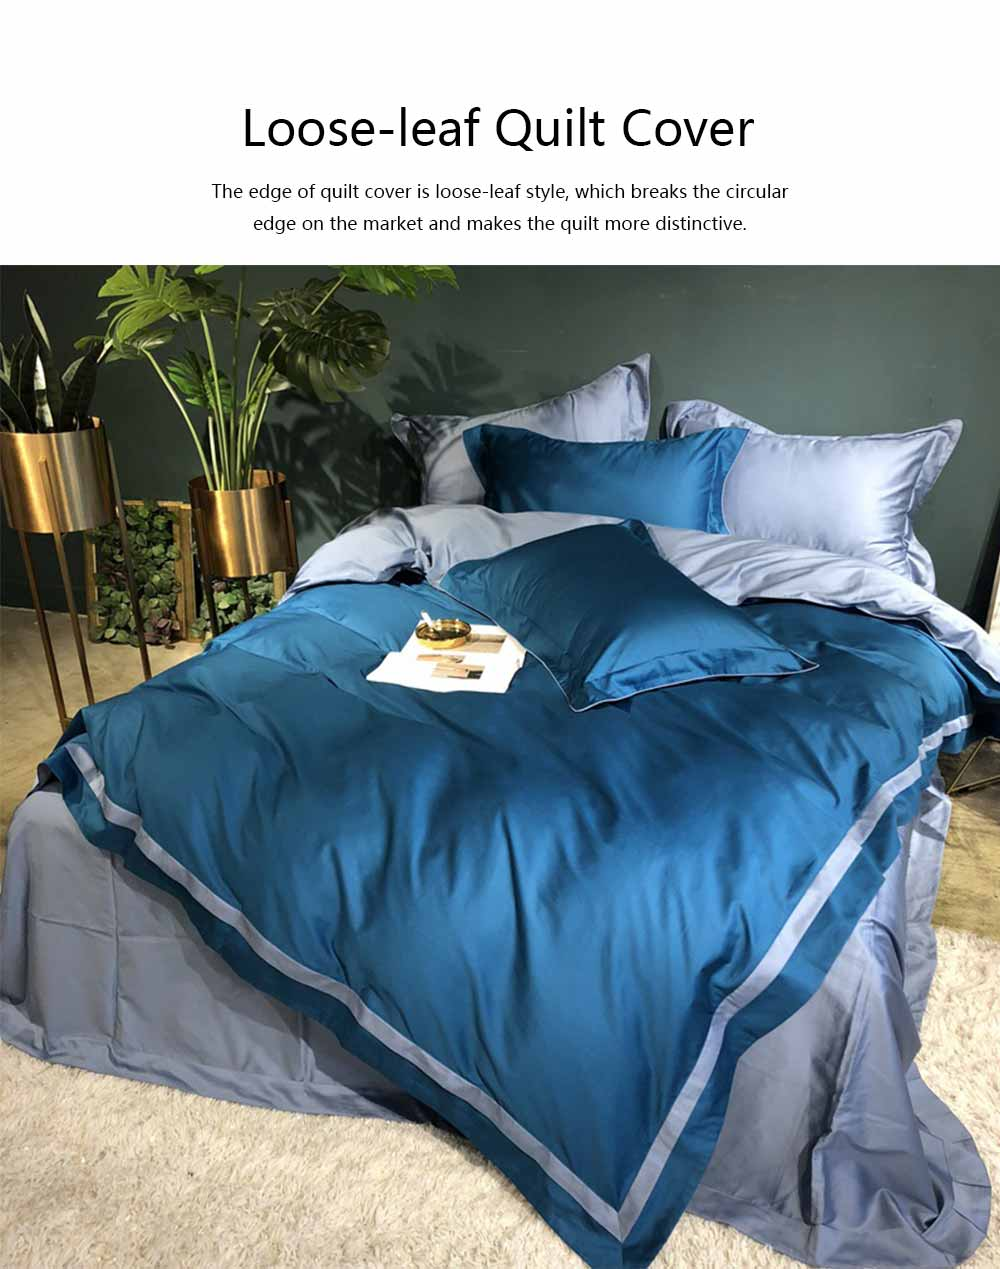 Four-piece Bedding Set Cotton Material, Flat-sheet Pillow Soft Bed Sheet Fitted-sheet Breathable Bedding Bag Comfortable Quilt 4